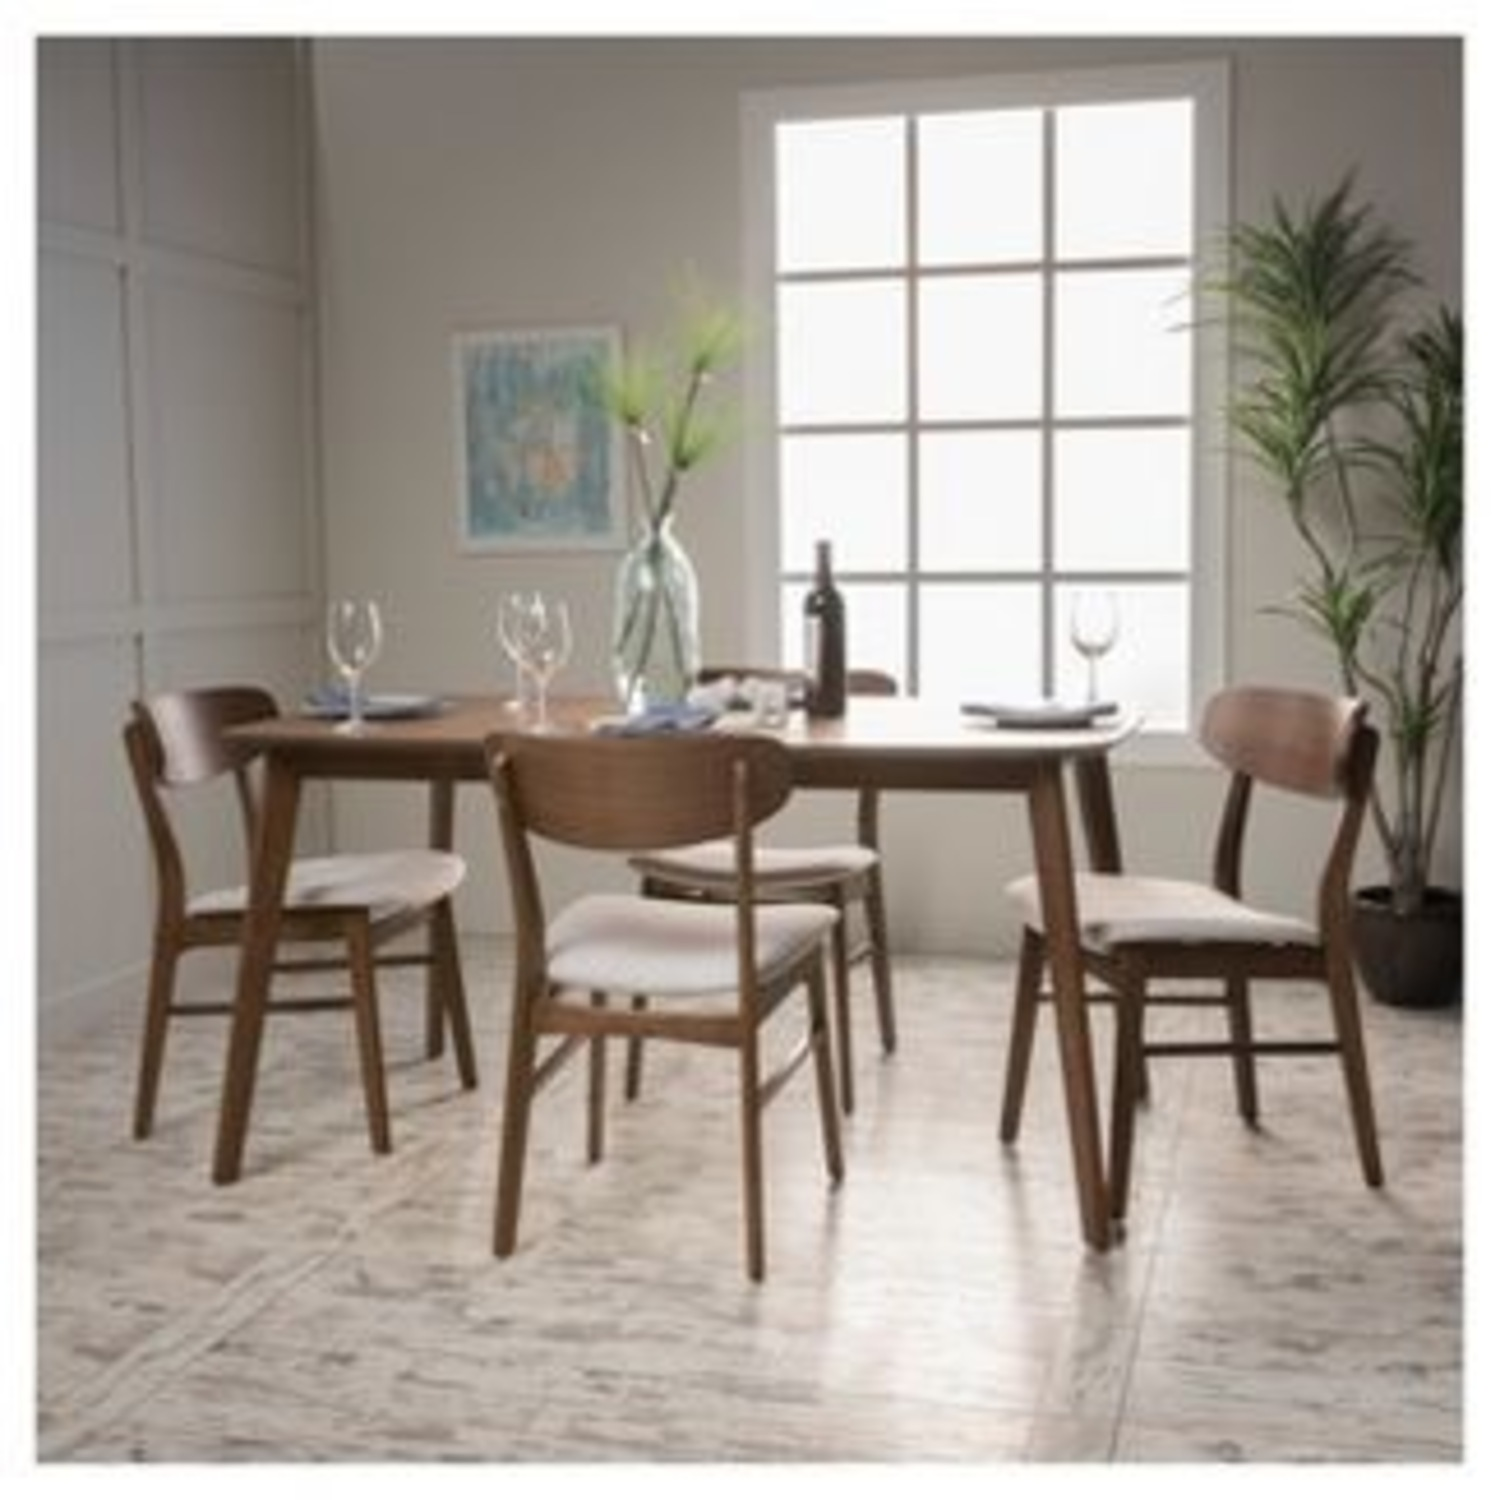 Christopher Knight Home Walnut Dining Chairs - image-3